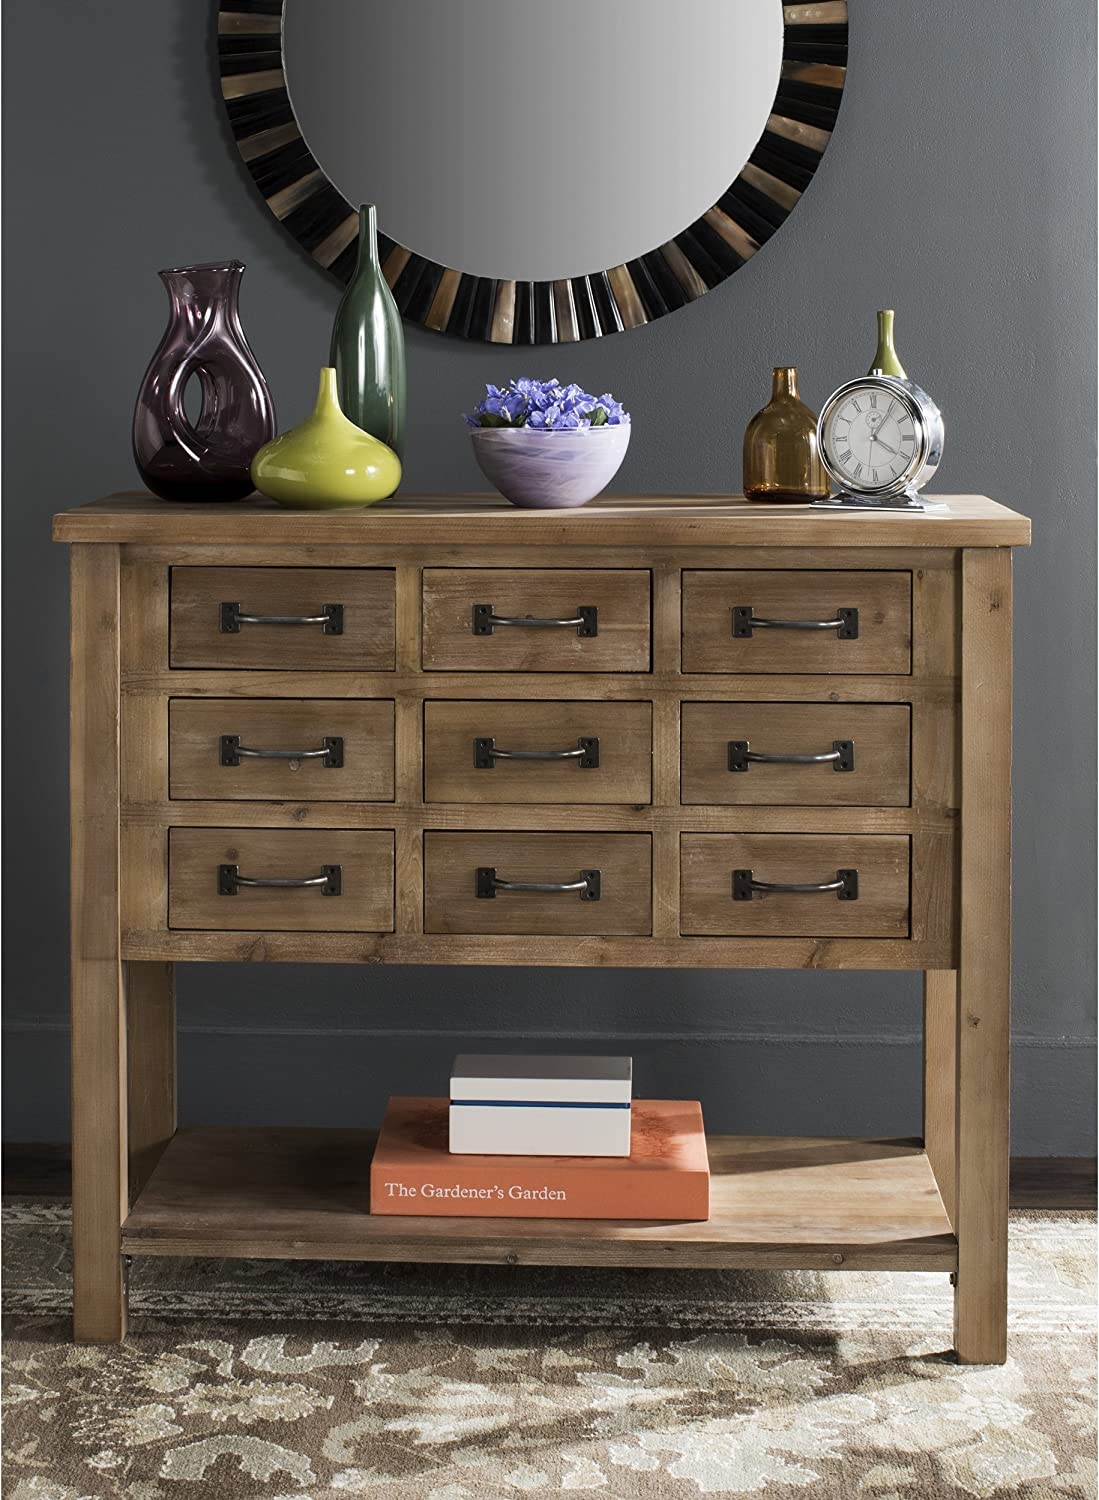 Safavieh Free Shipping Cheap Bargain Gift American Homes Collection Mendie Natural C Drawer 9 2021 model Oak